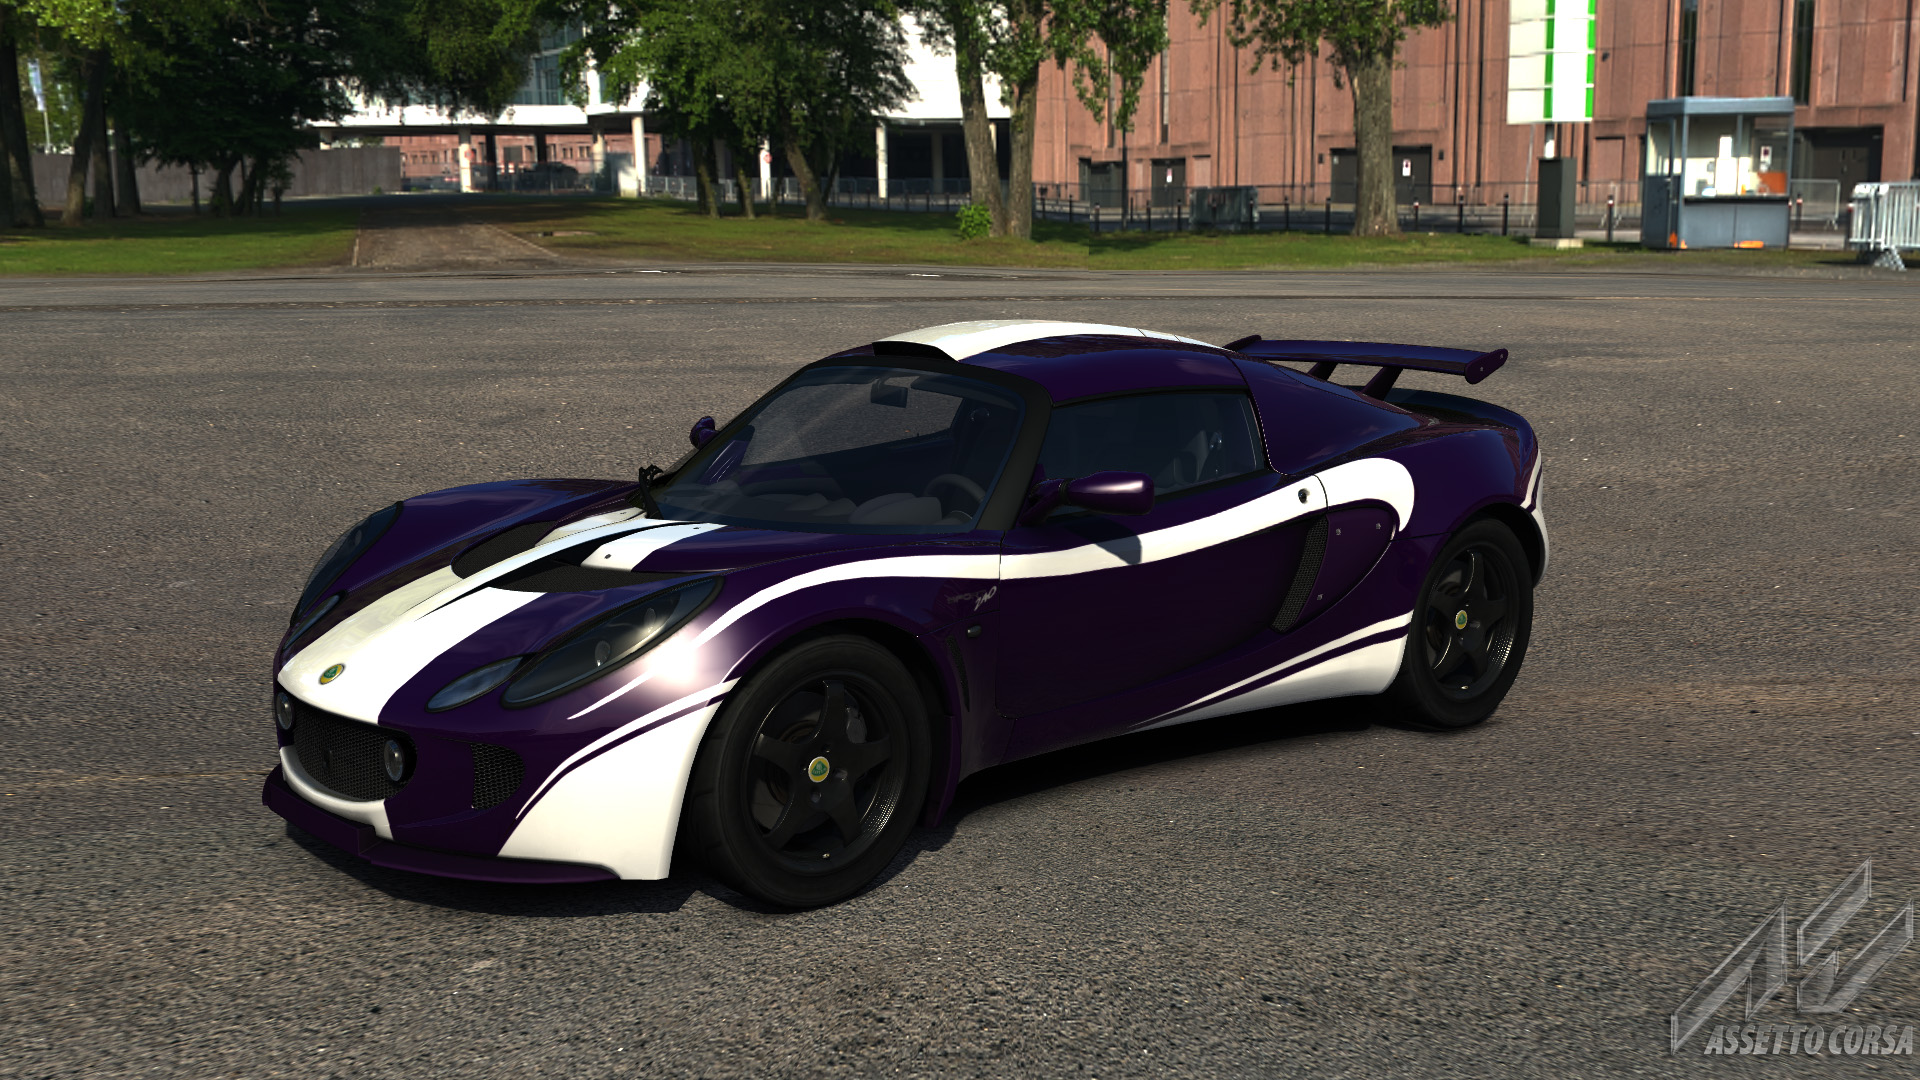 Purple Lotus Exige 240R